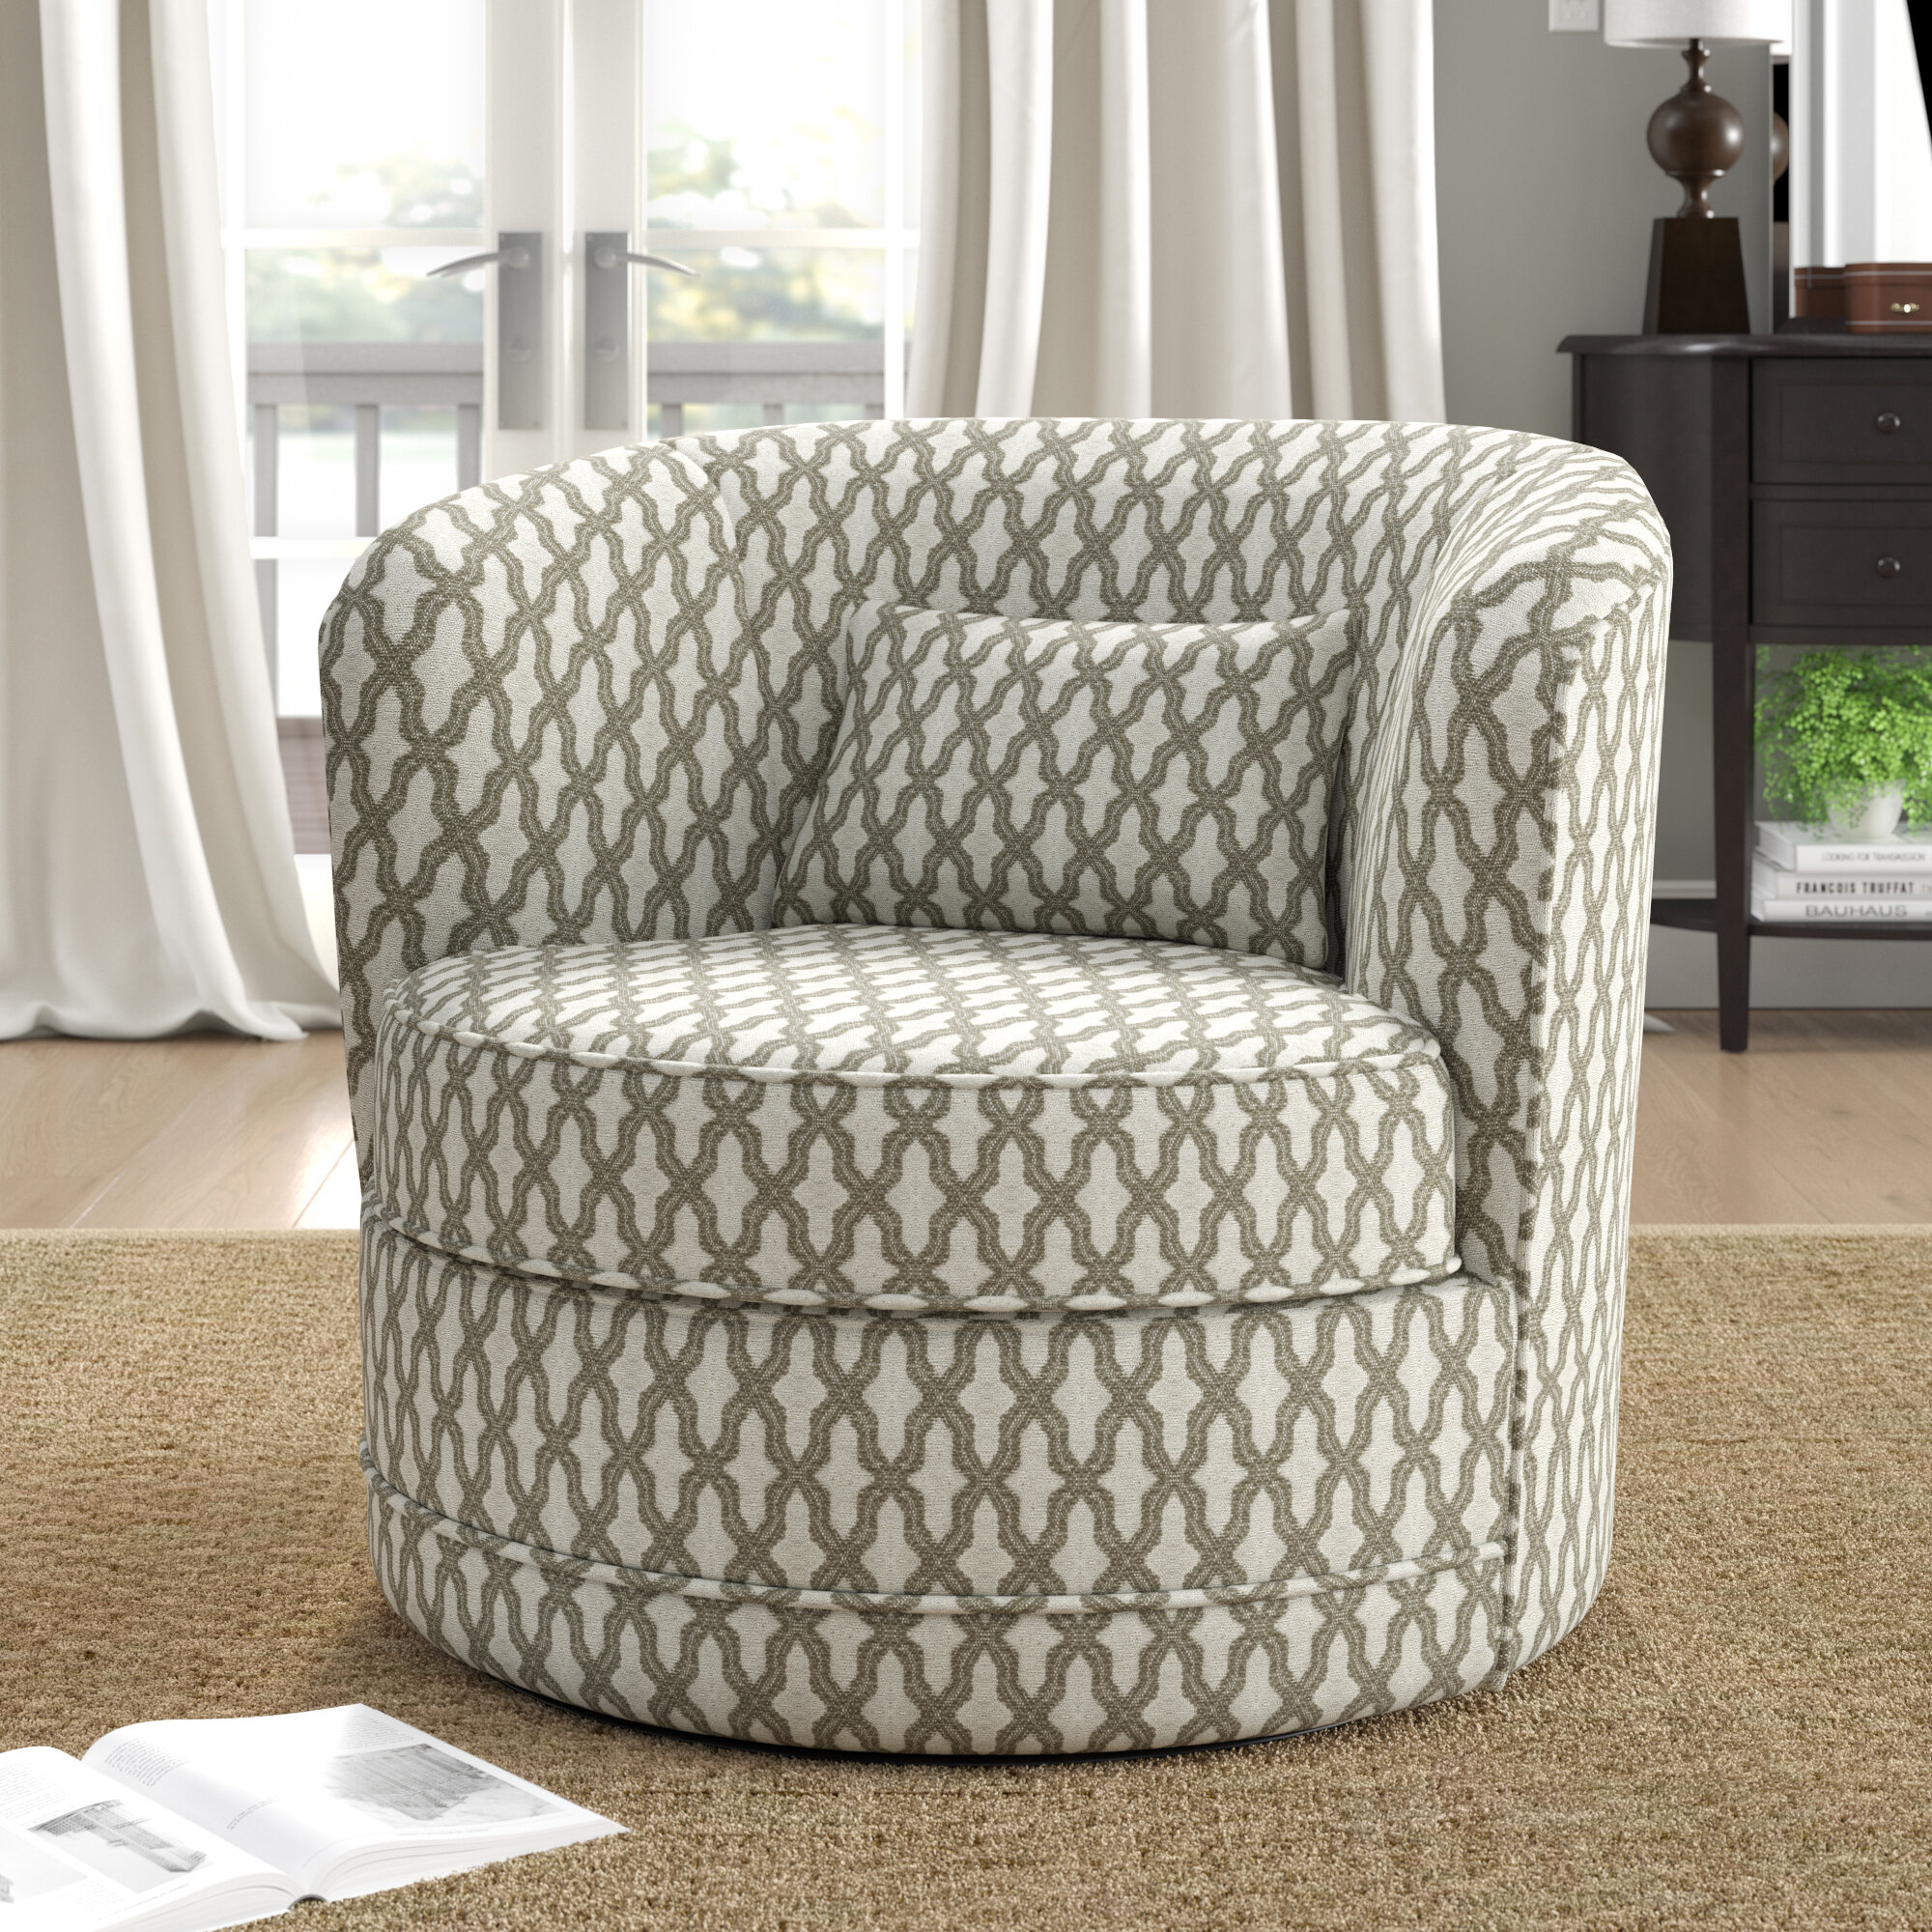 Barrel Accent Chairs On Sale | Wayfair Intended For Jazouli Linen Barrel Chairs And Ottoman (View 12 of 15)